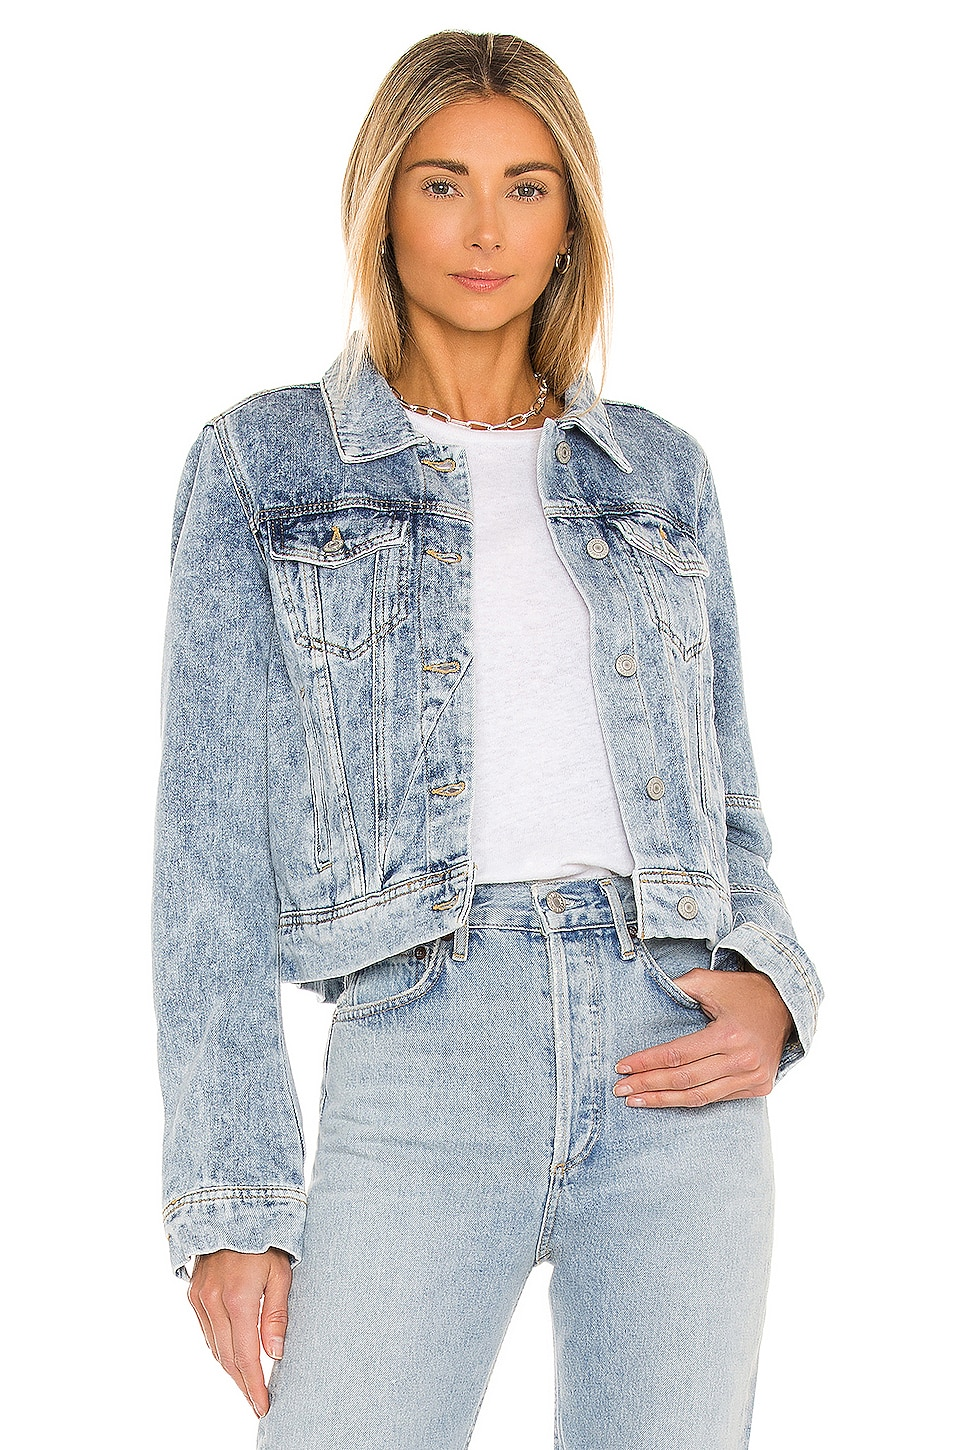 Rumors Denim Jacket                     Free People 7